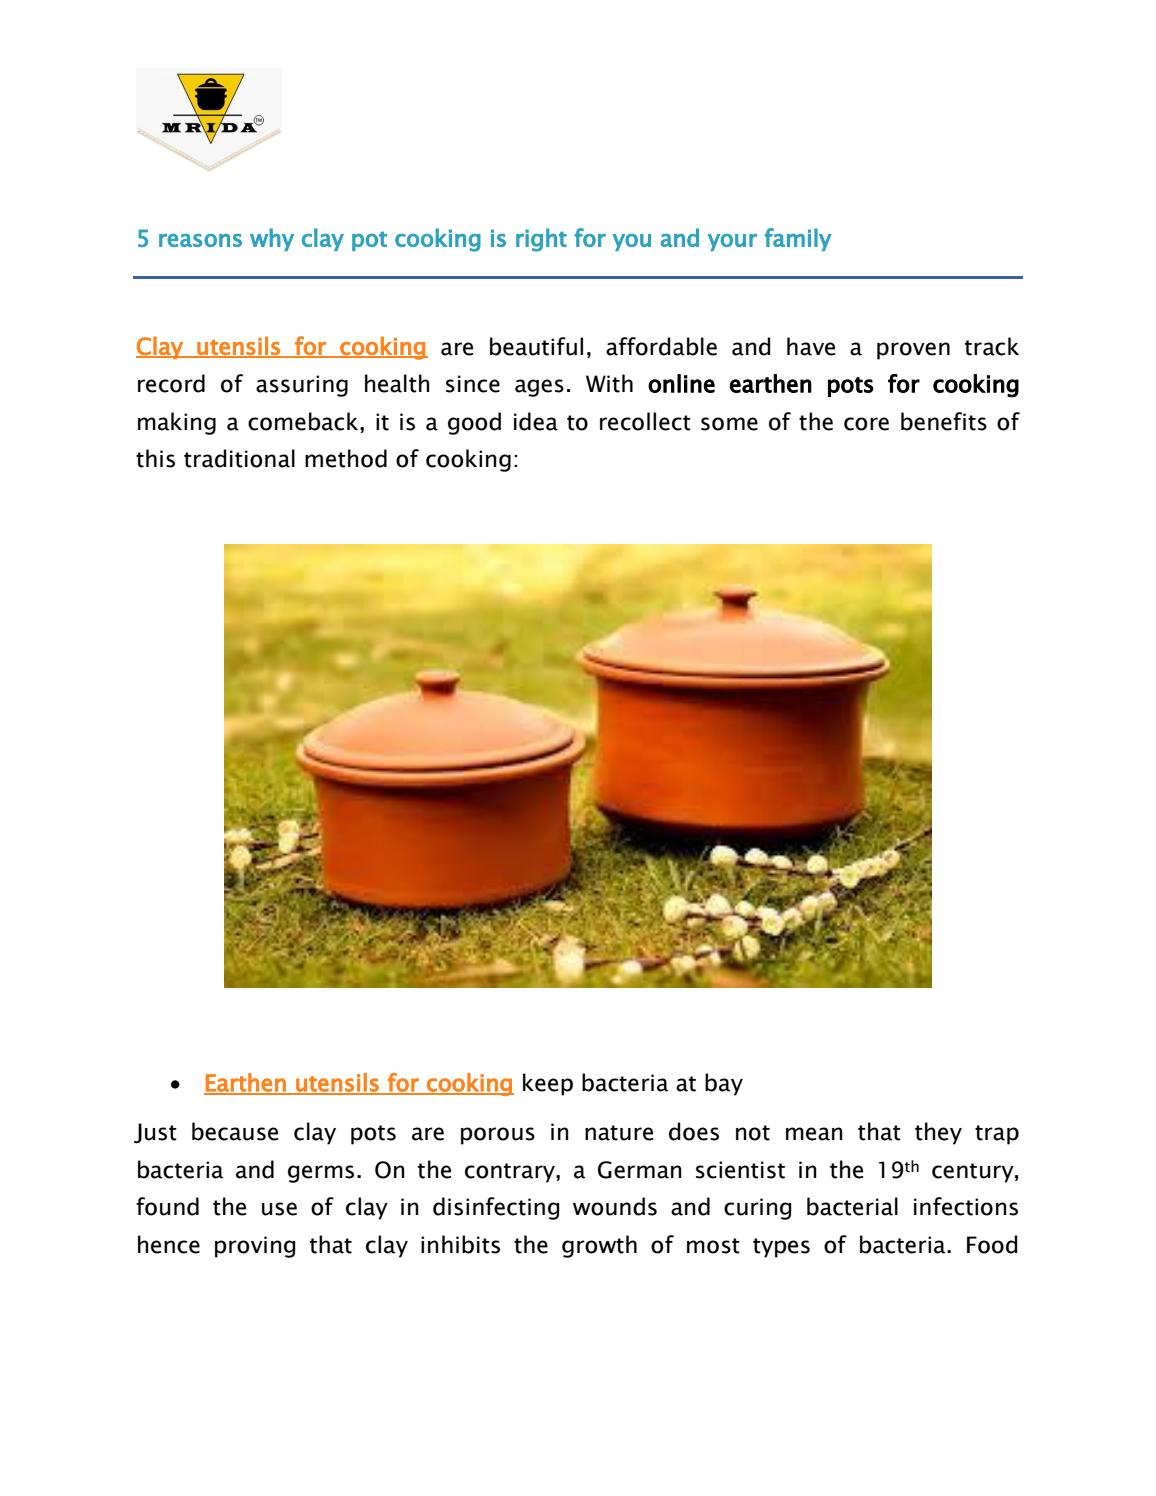 clay pot meaning 2 reasons why clay pot cooking is right for you and your family by